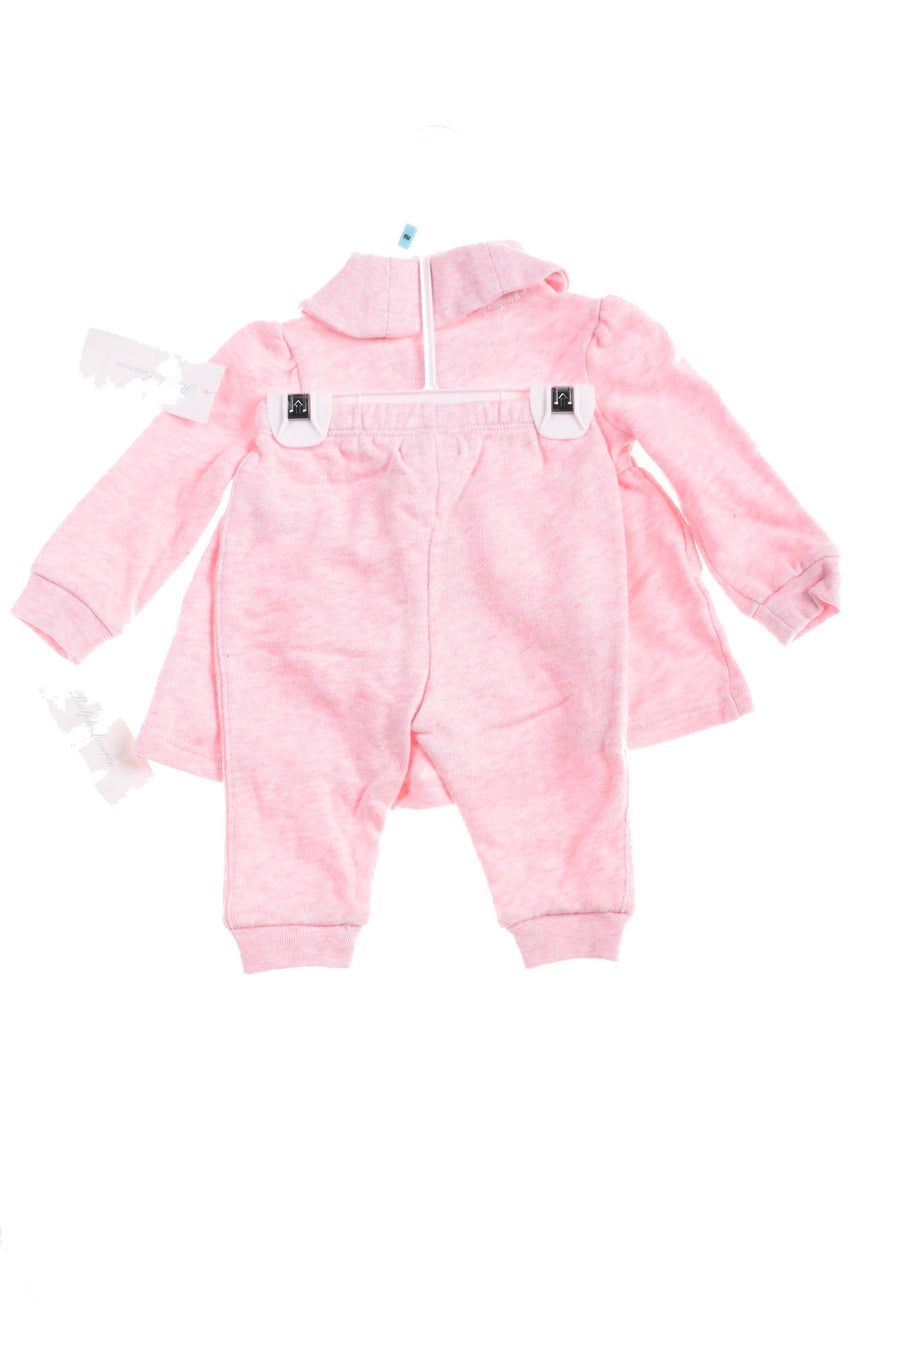 Baby Girl's Outfit By Ralph Lauren